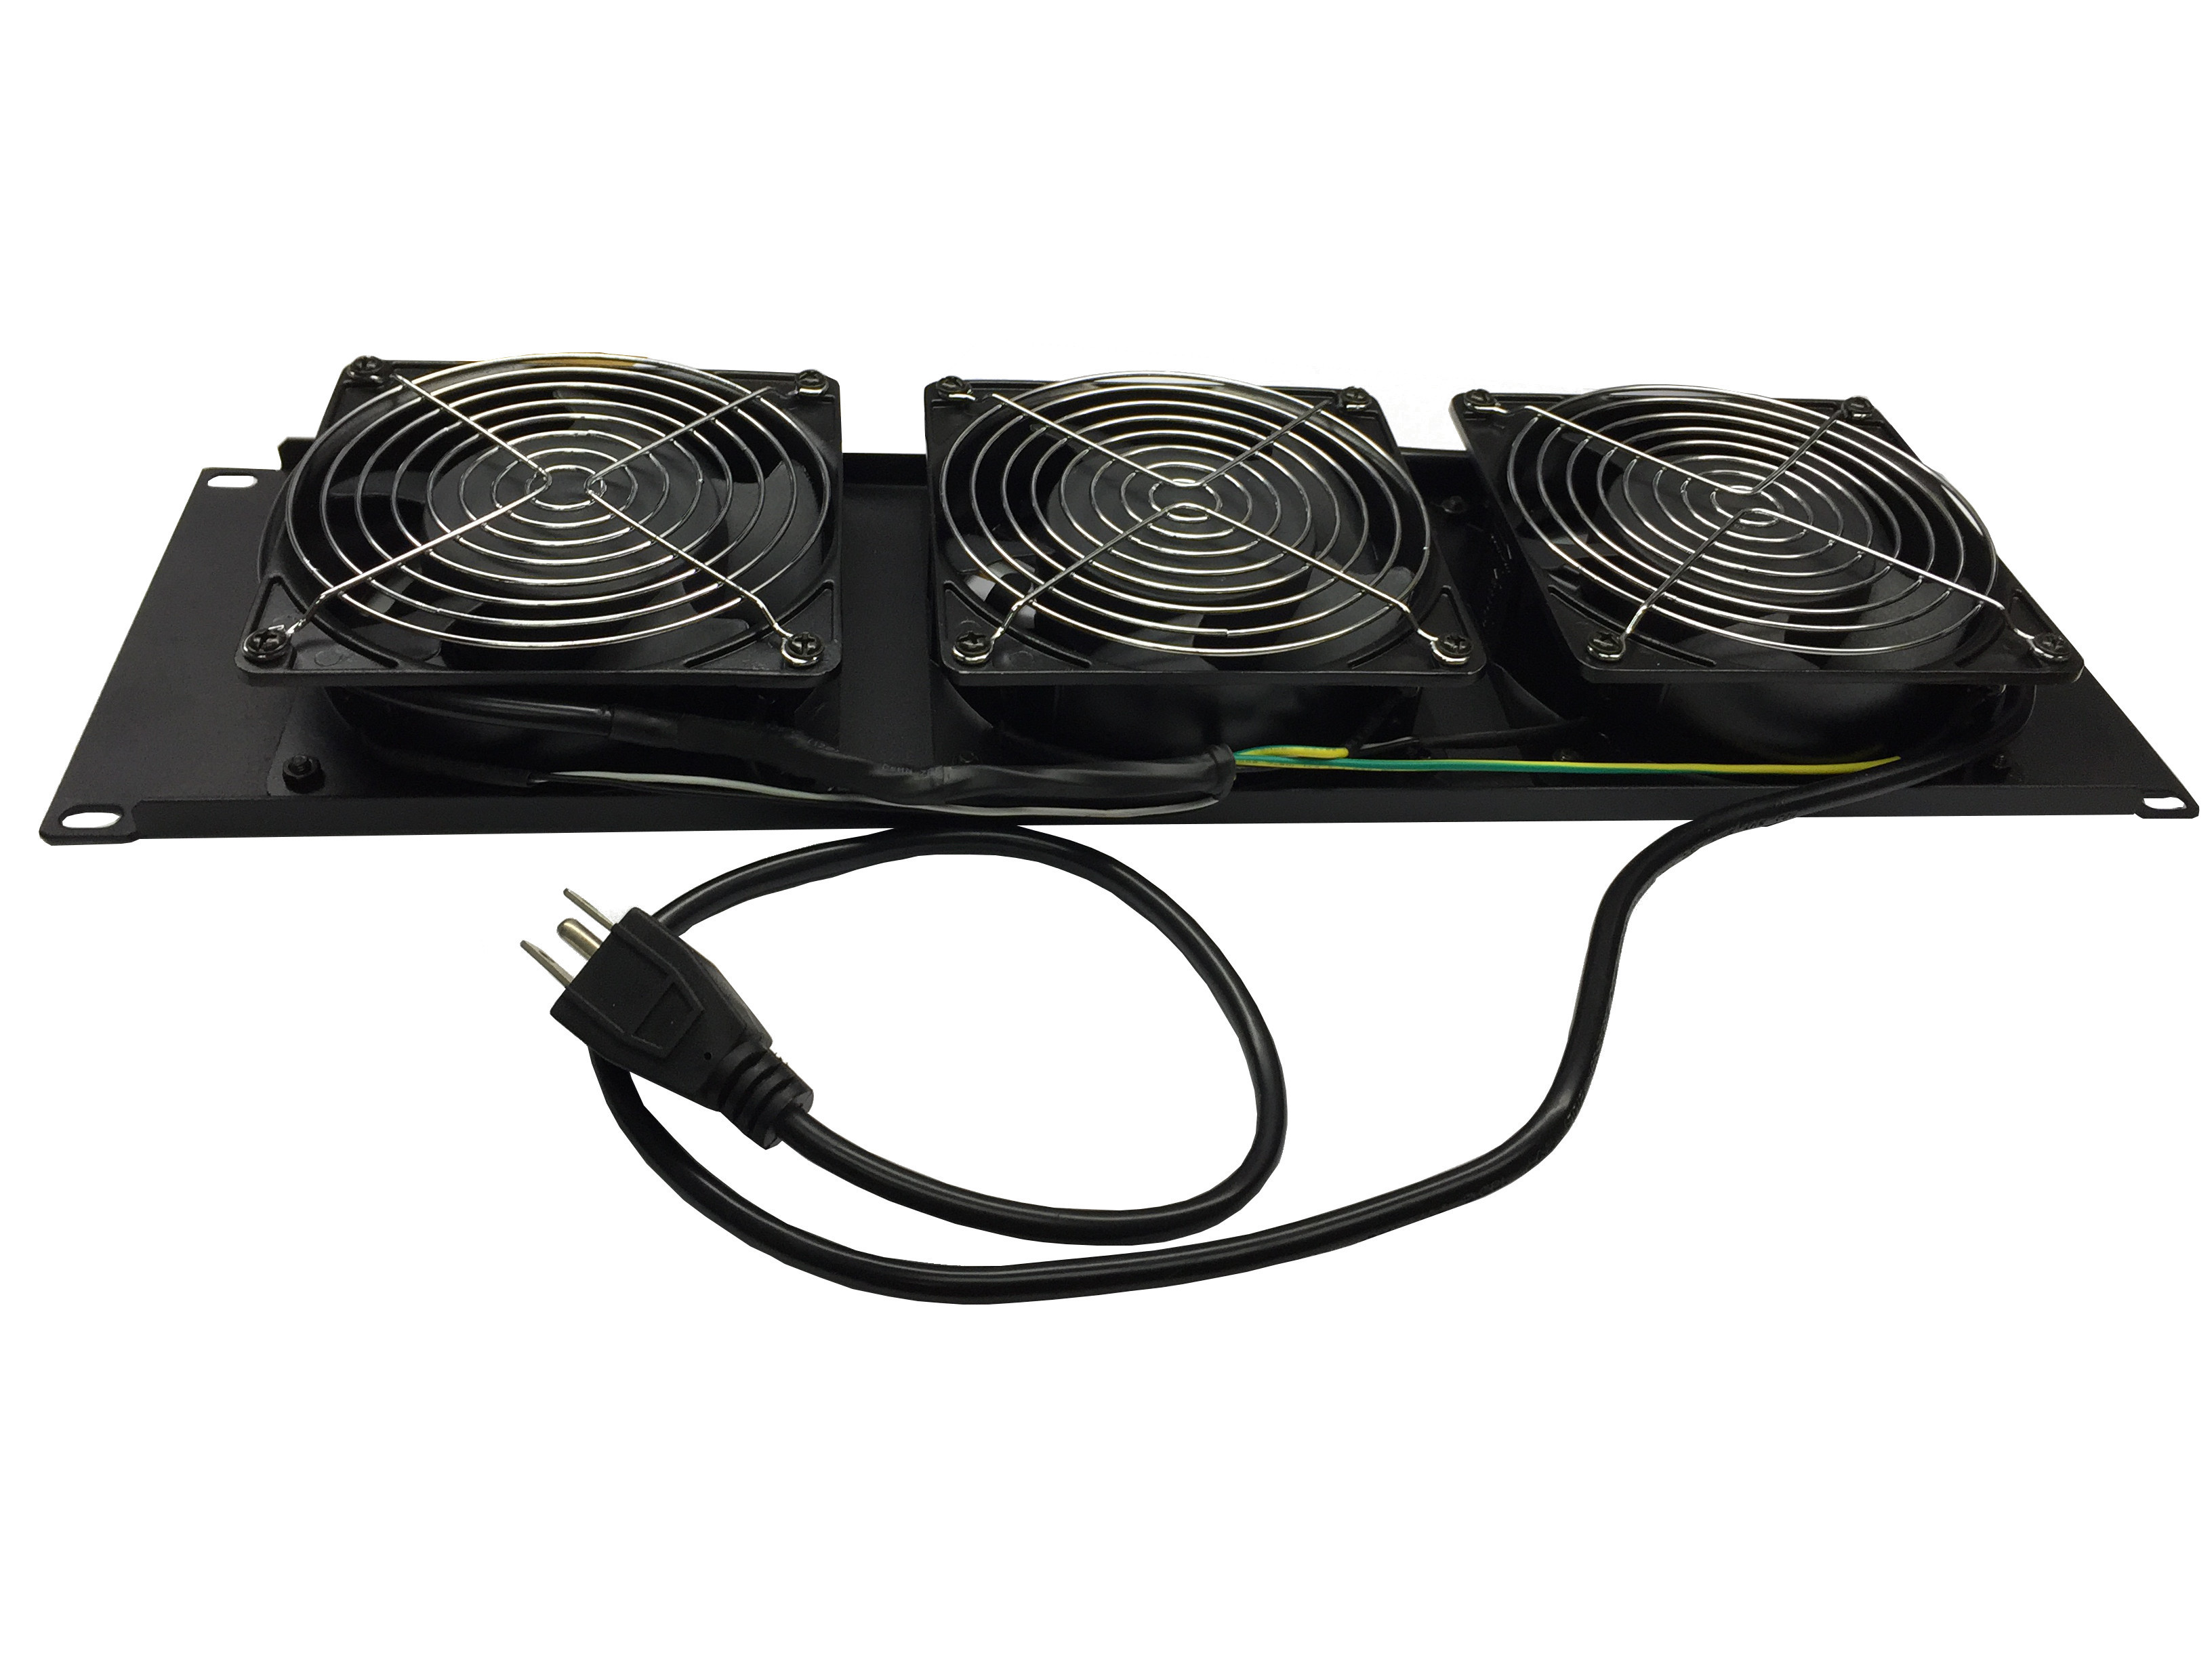 "120139 - 19"" Rack Mount Cooling Fan Panel with 3 Pre-Installed Fans - 3U"